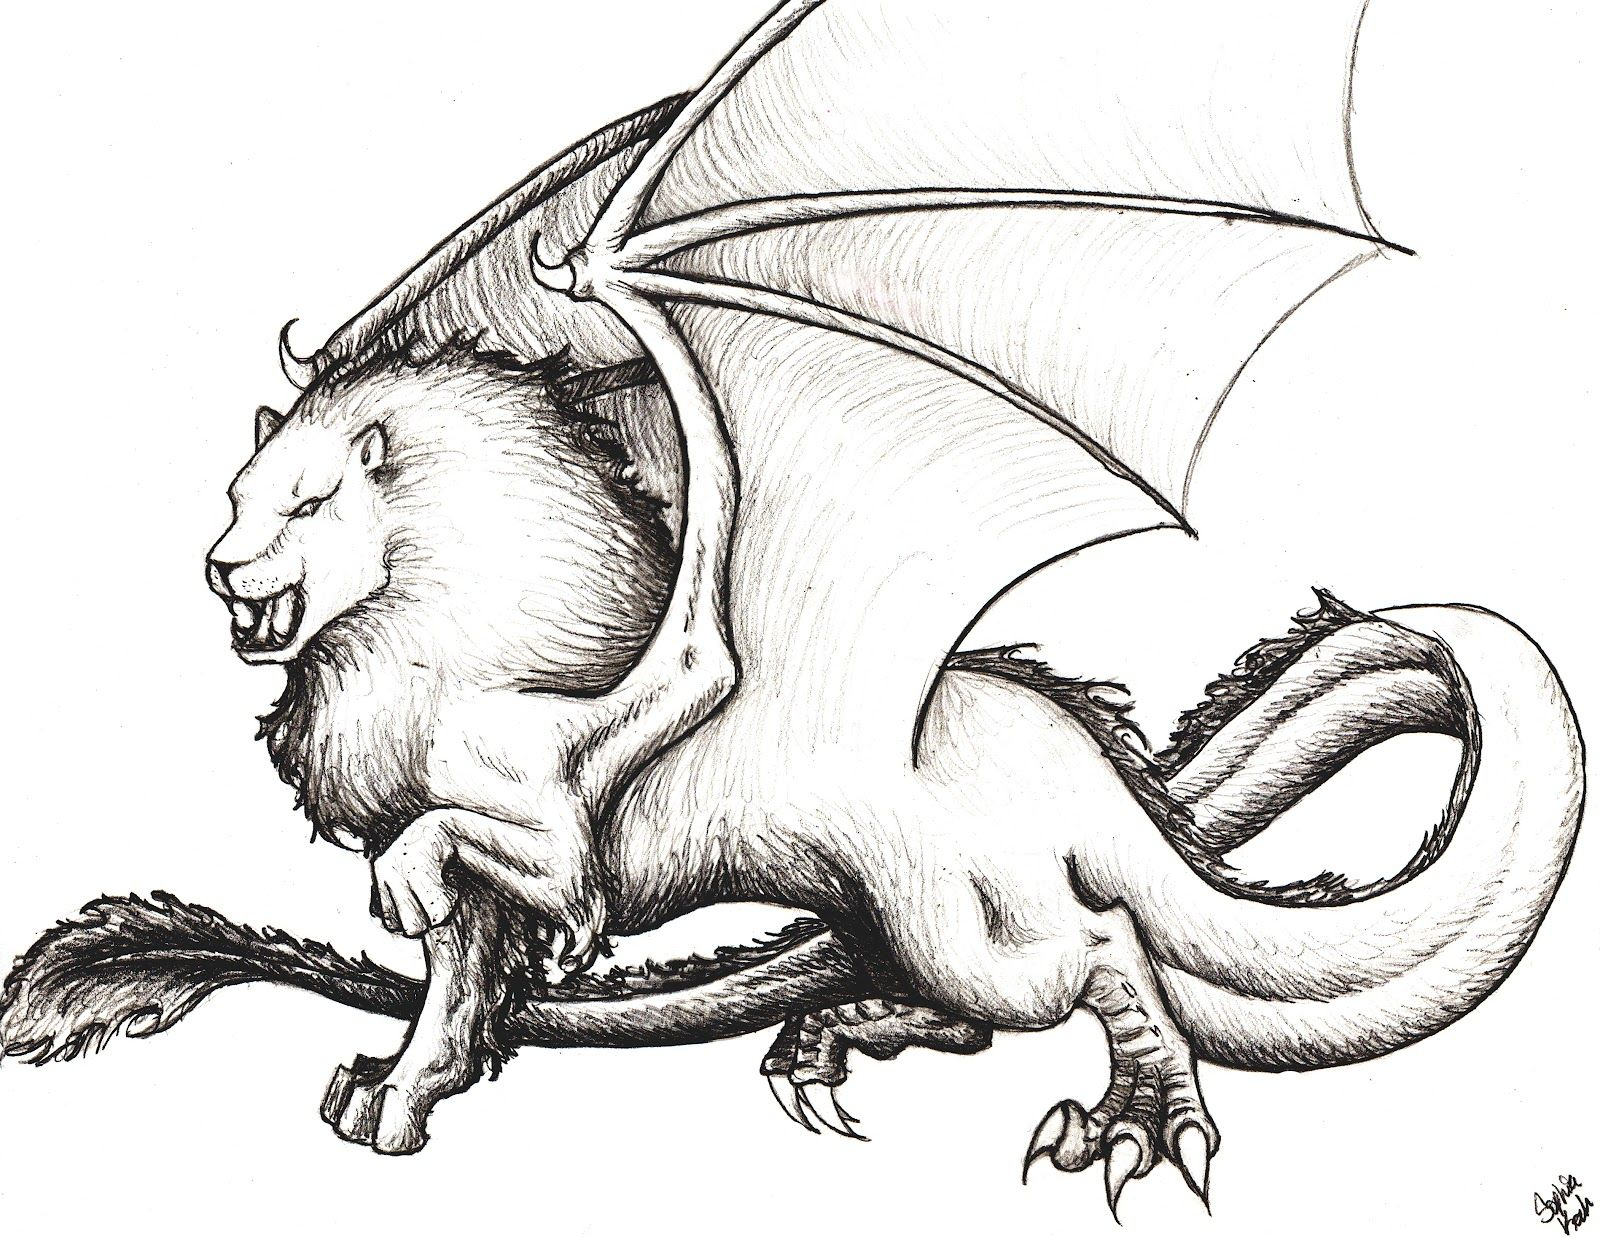 How to breed heraldic dragon - Gamelyon Heraldry A Lion Like Creature With Wings And A Forked Tongue